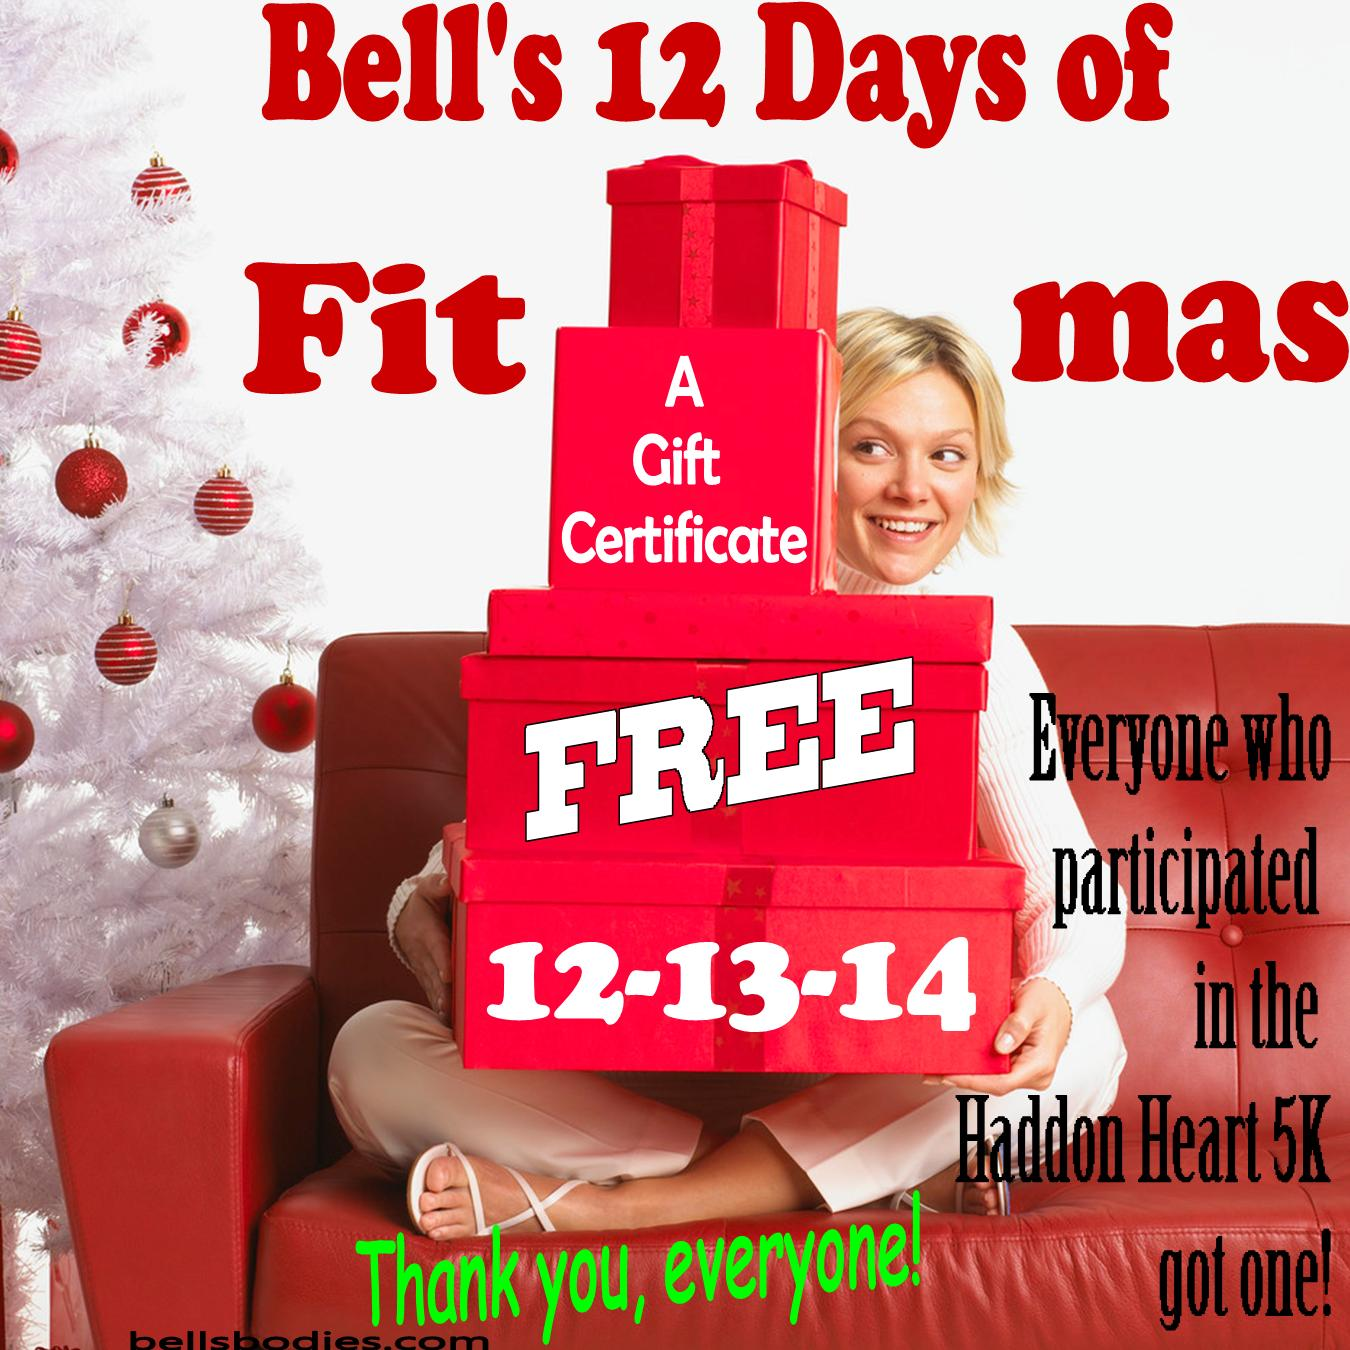 On the 1st day of fit-mas